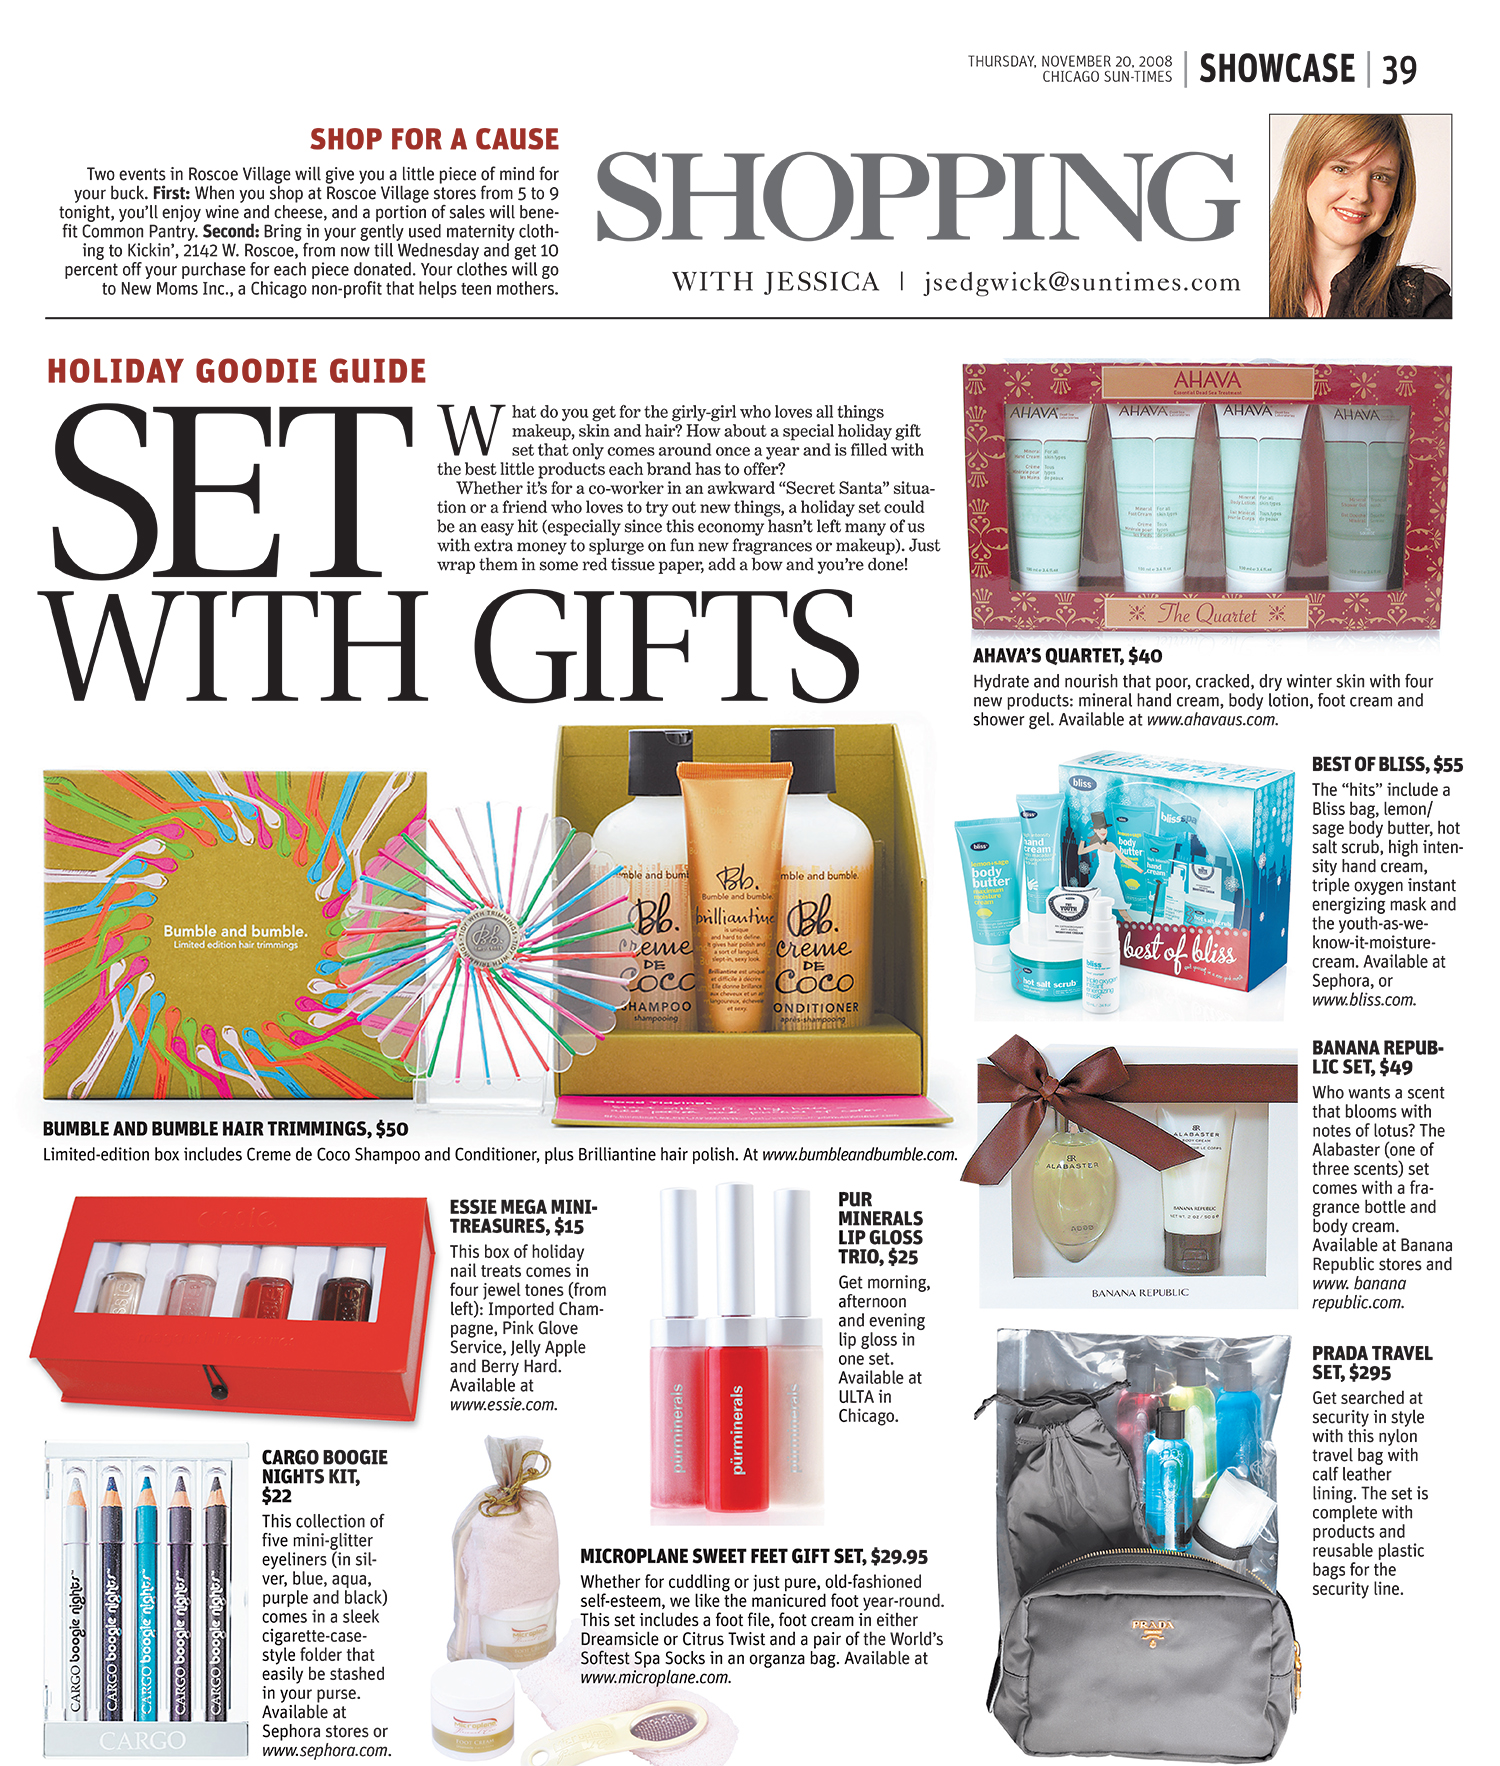 """Piet Houtenbos' work for bumble and bumble's holiday gift box featured in the Chicago Sun Times """"Holiday Goodie Guide with Jessica Sedgwick."""